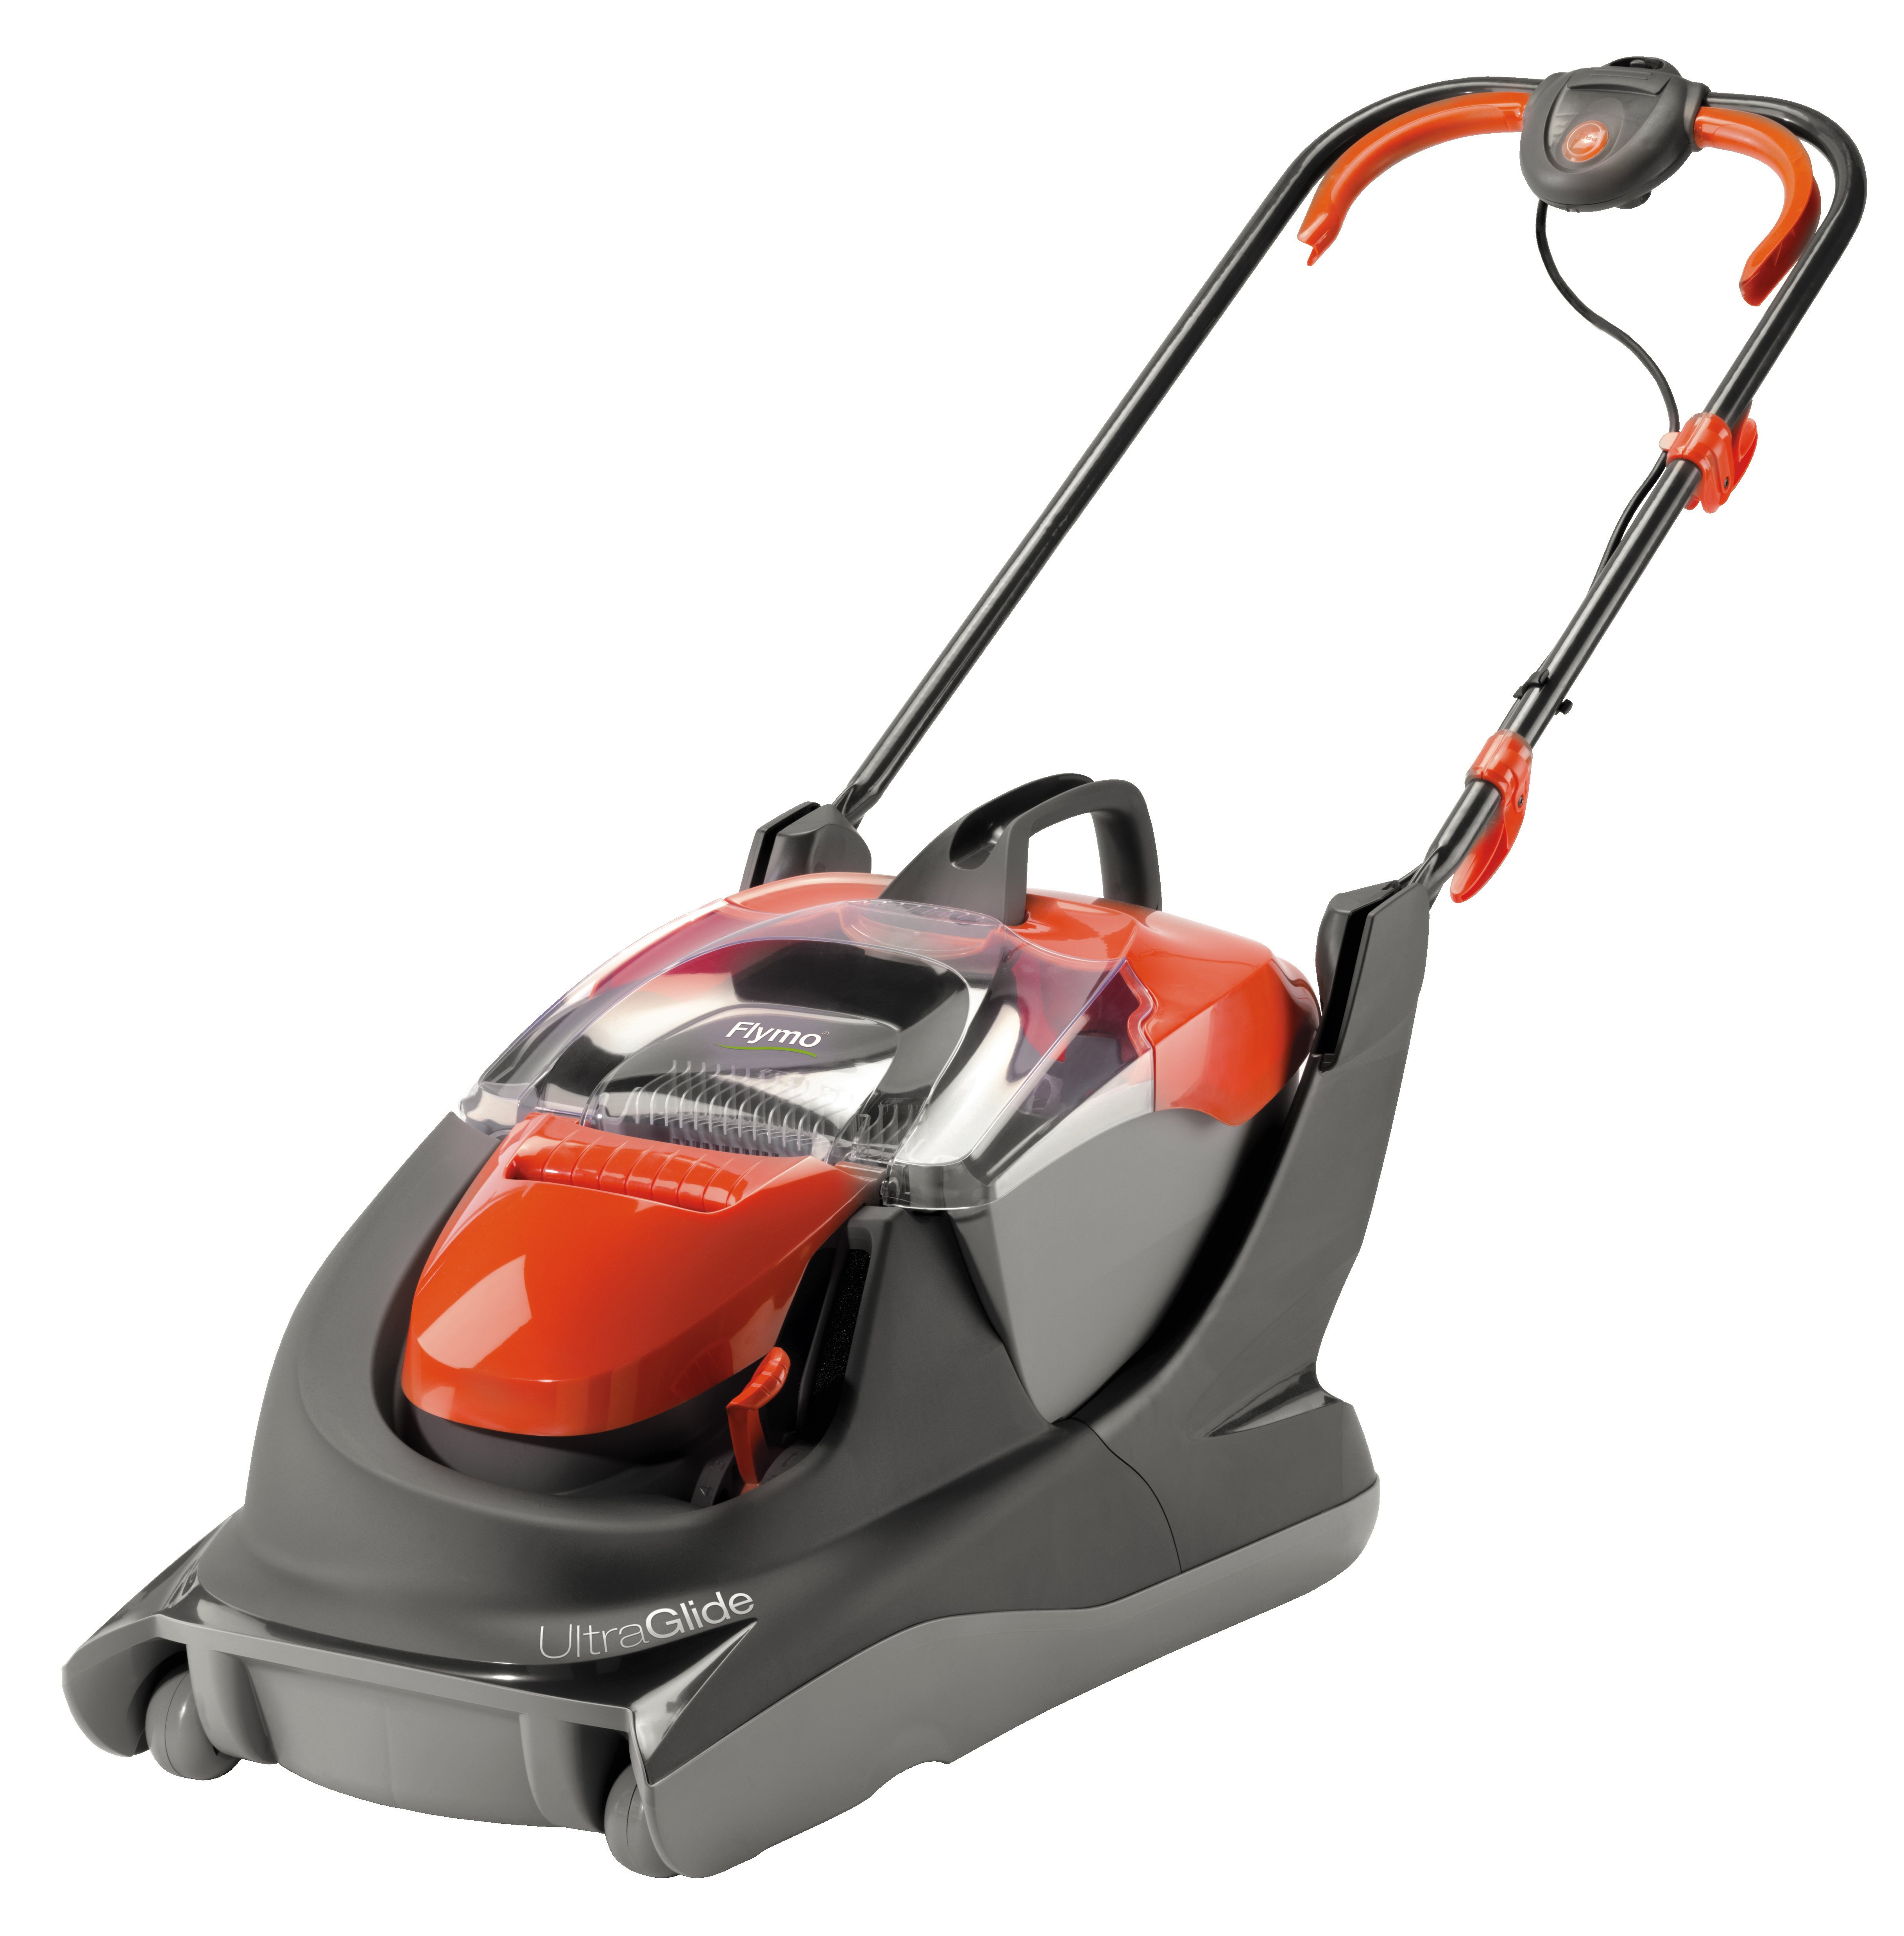 Flymo Ultraglide Corded Collect Hover Mower 1800w